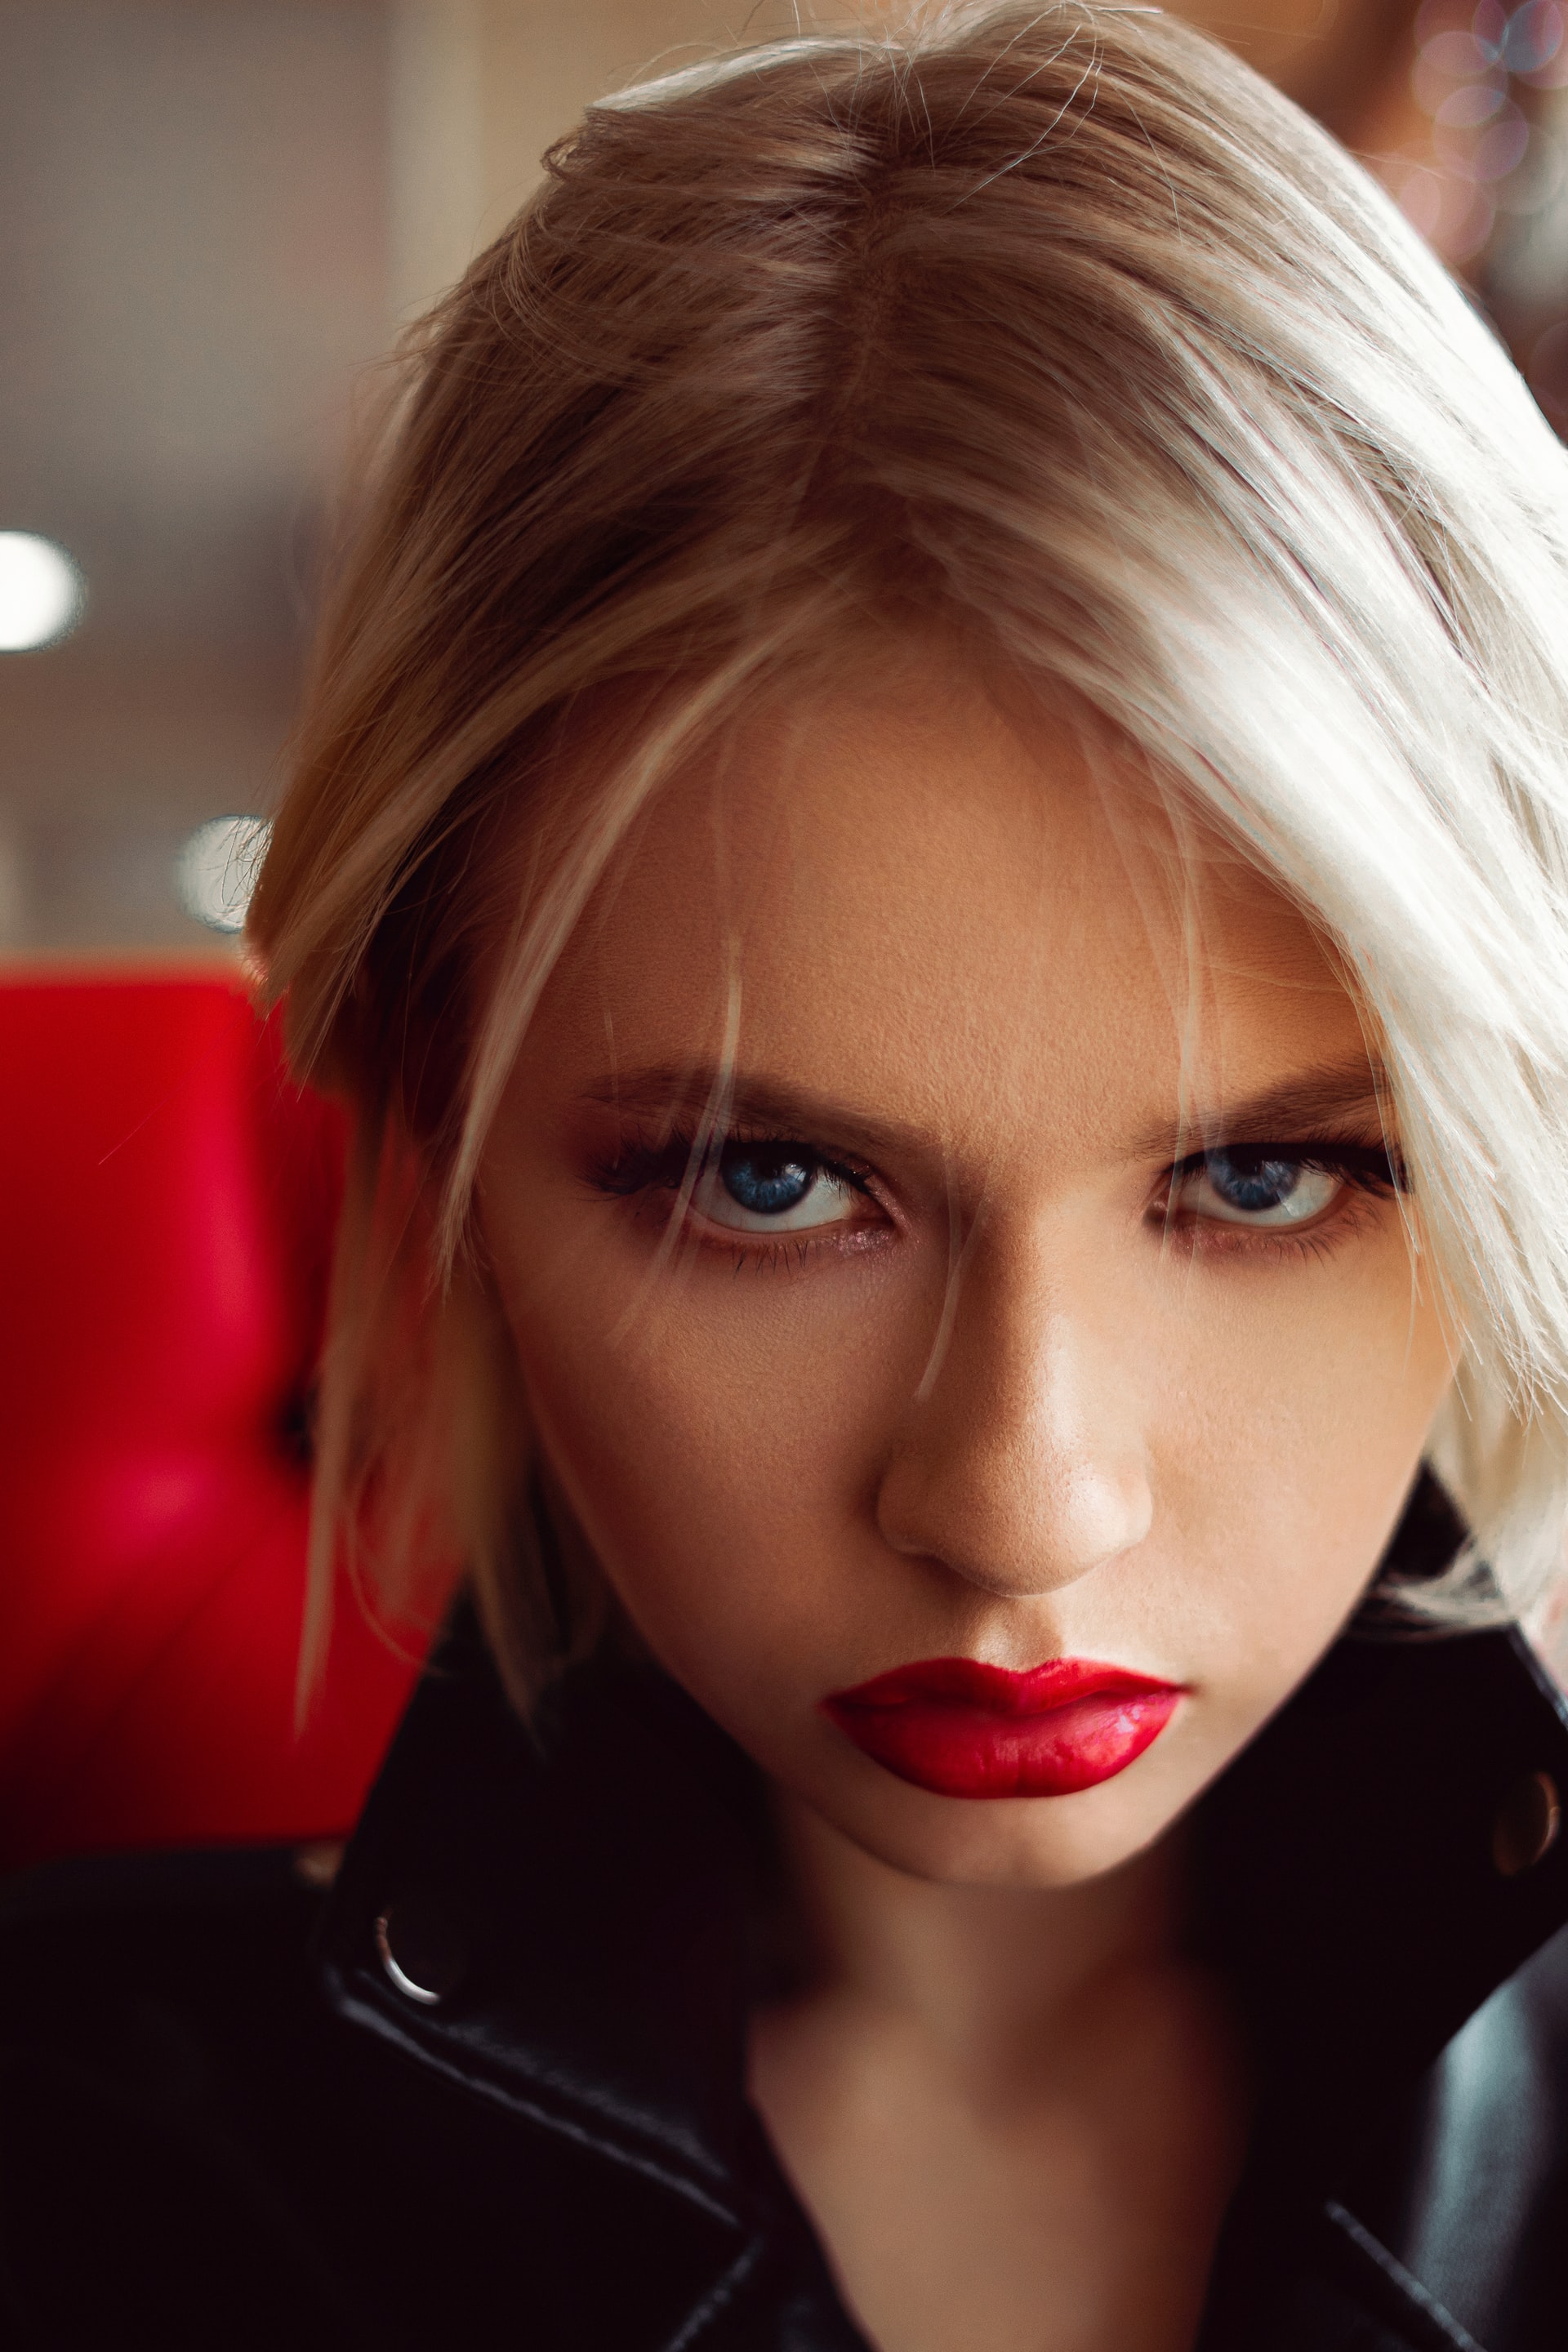 bright red lipstick and blonde hair